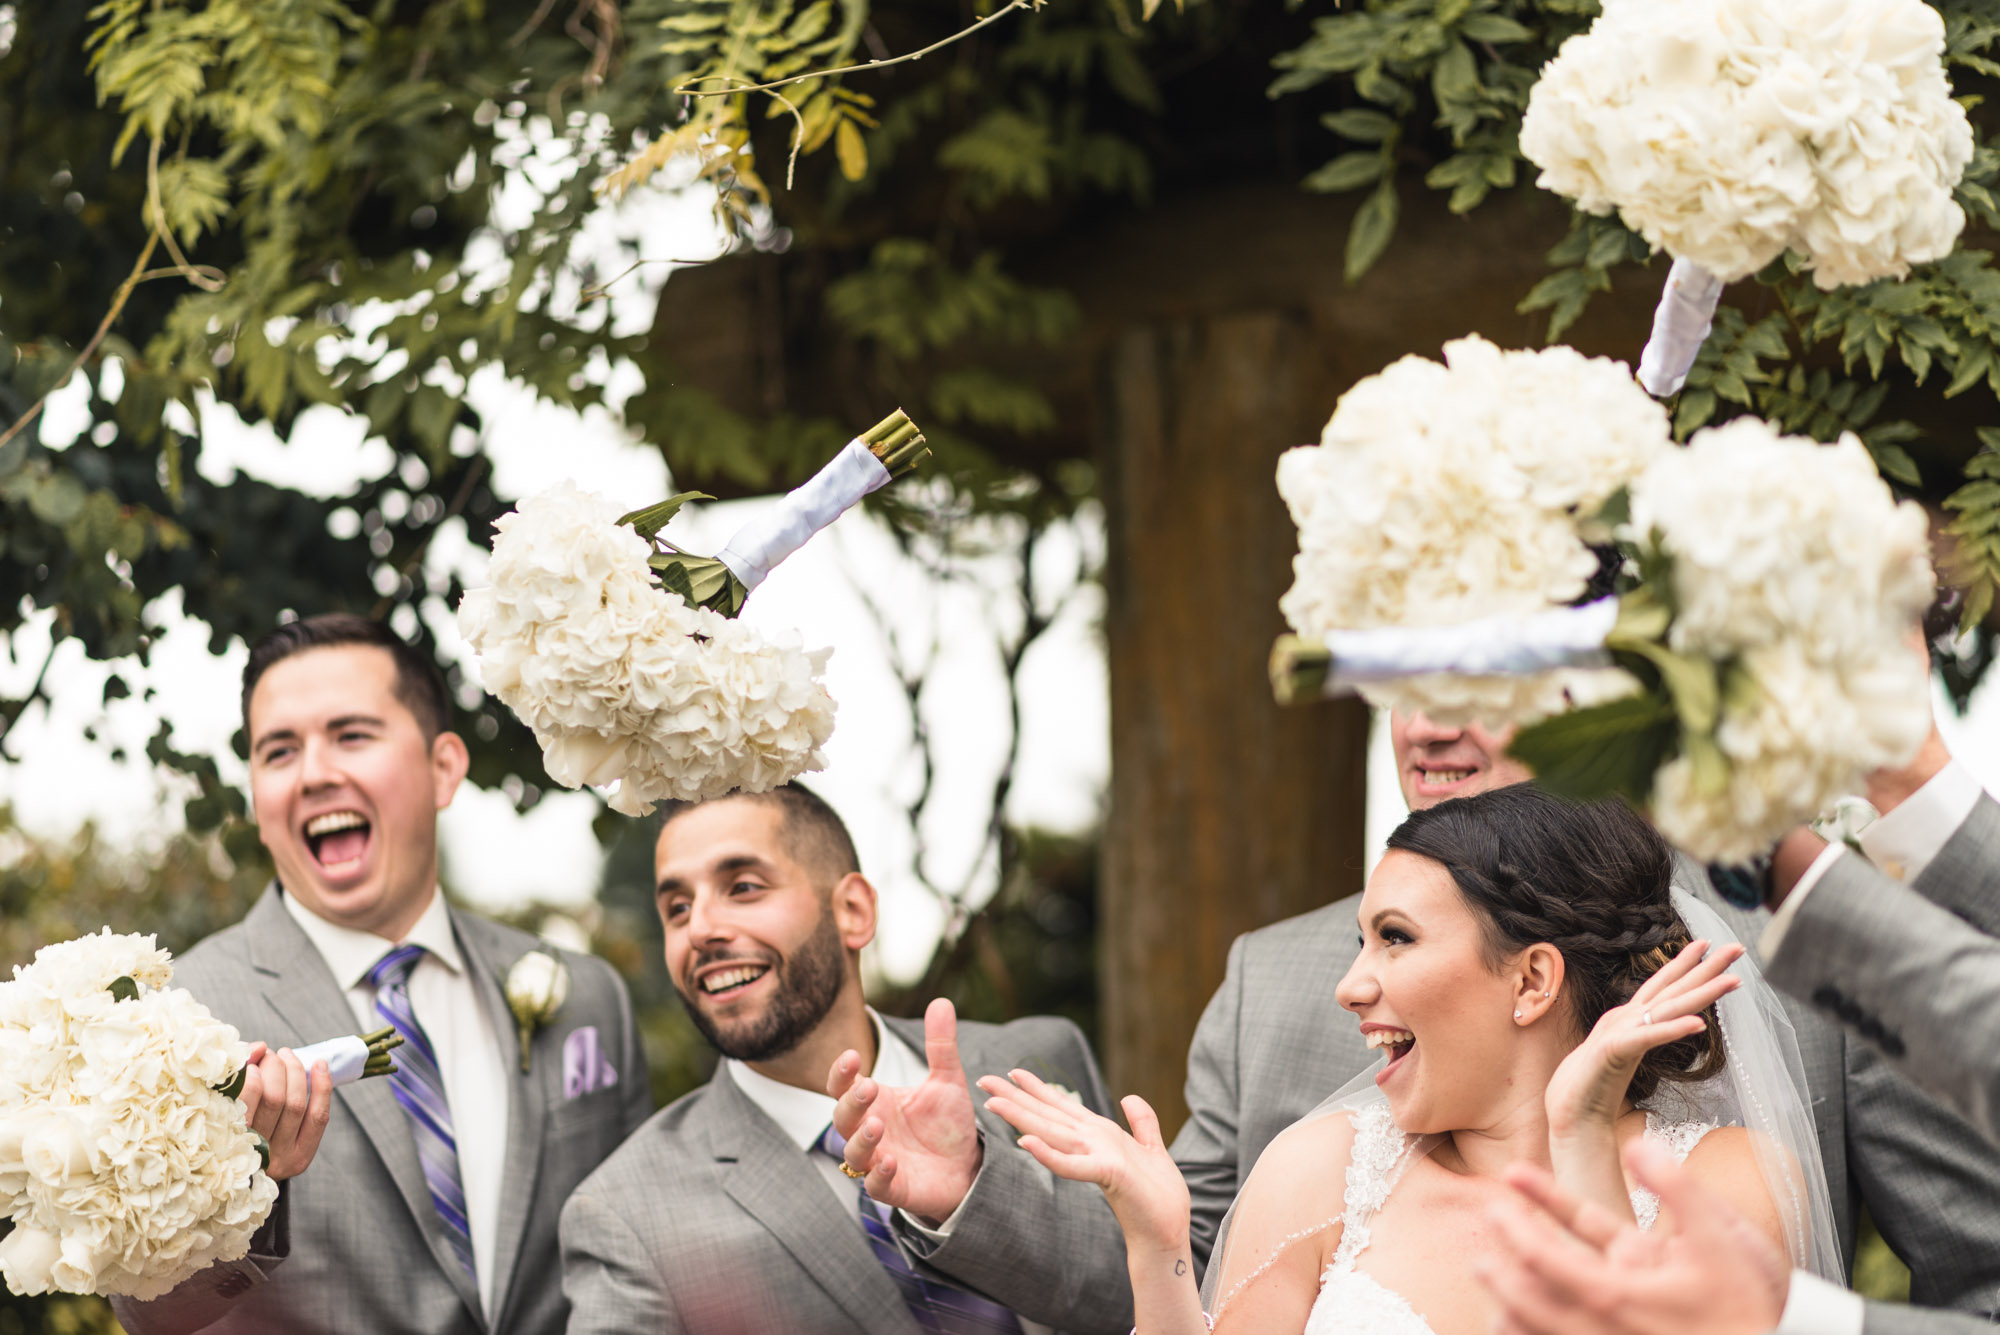 Groomsmen and Bride tossing bouquets